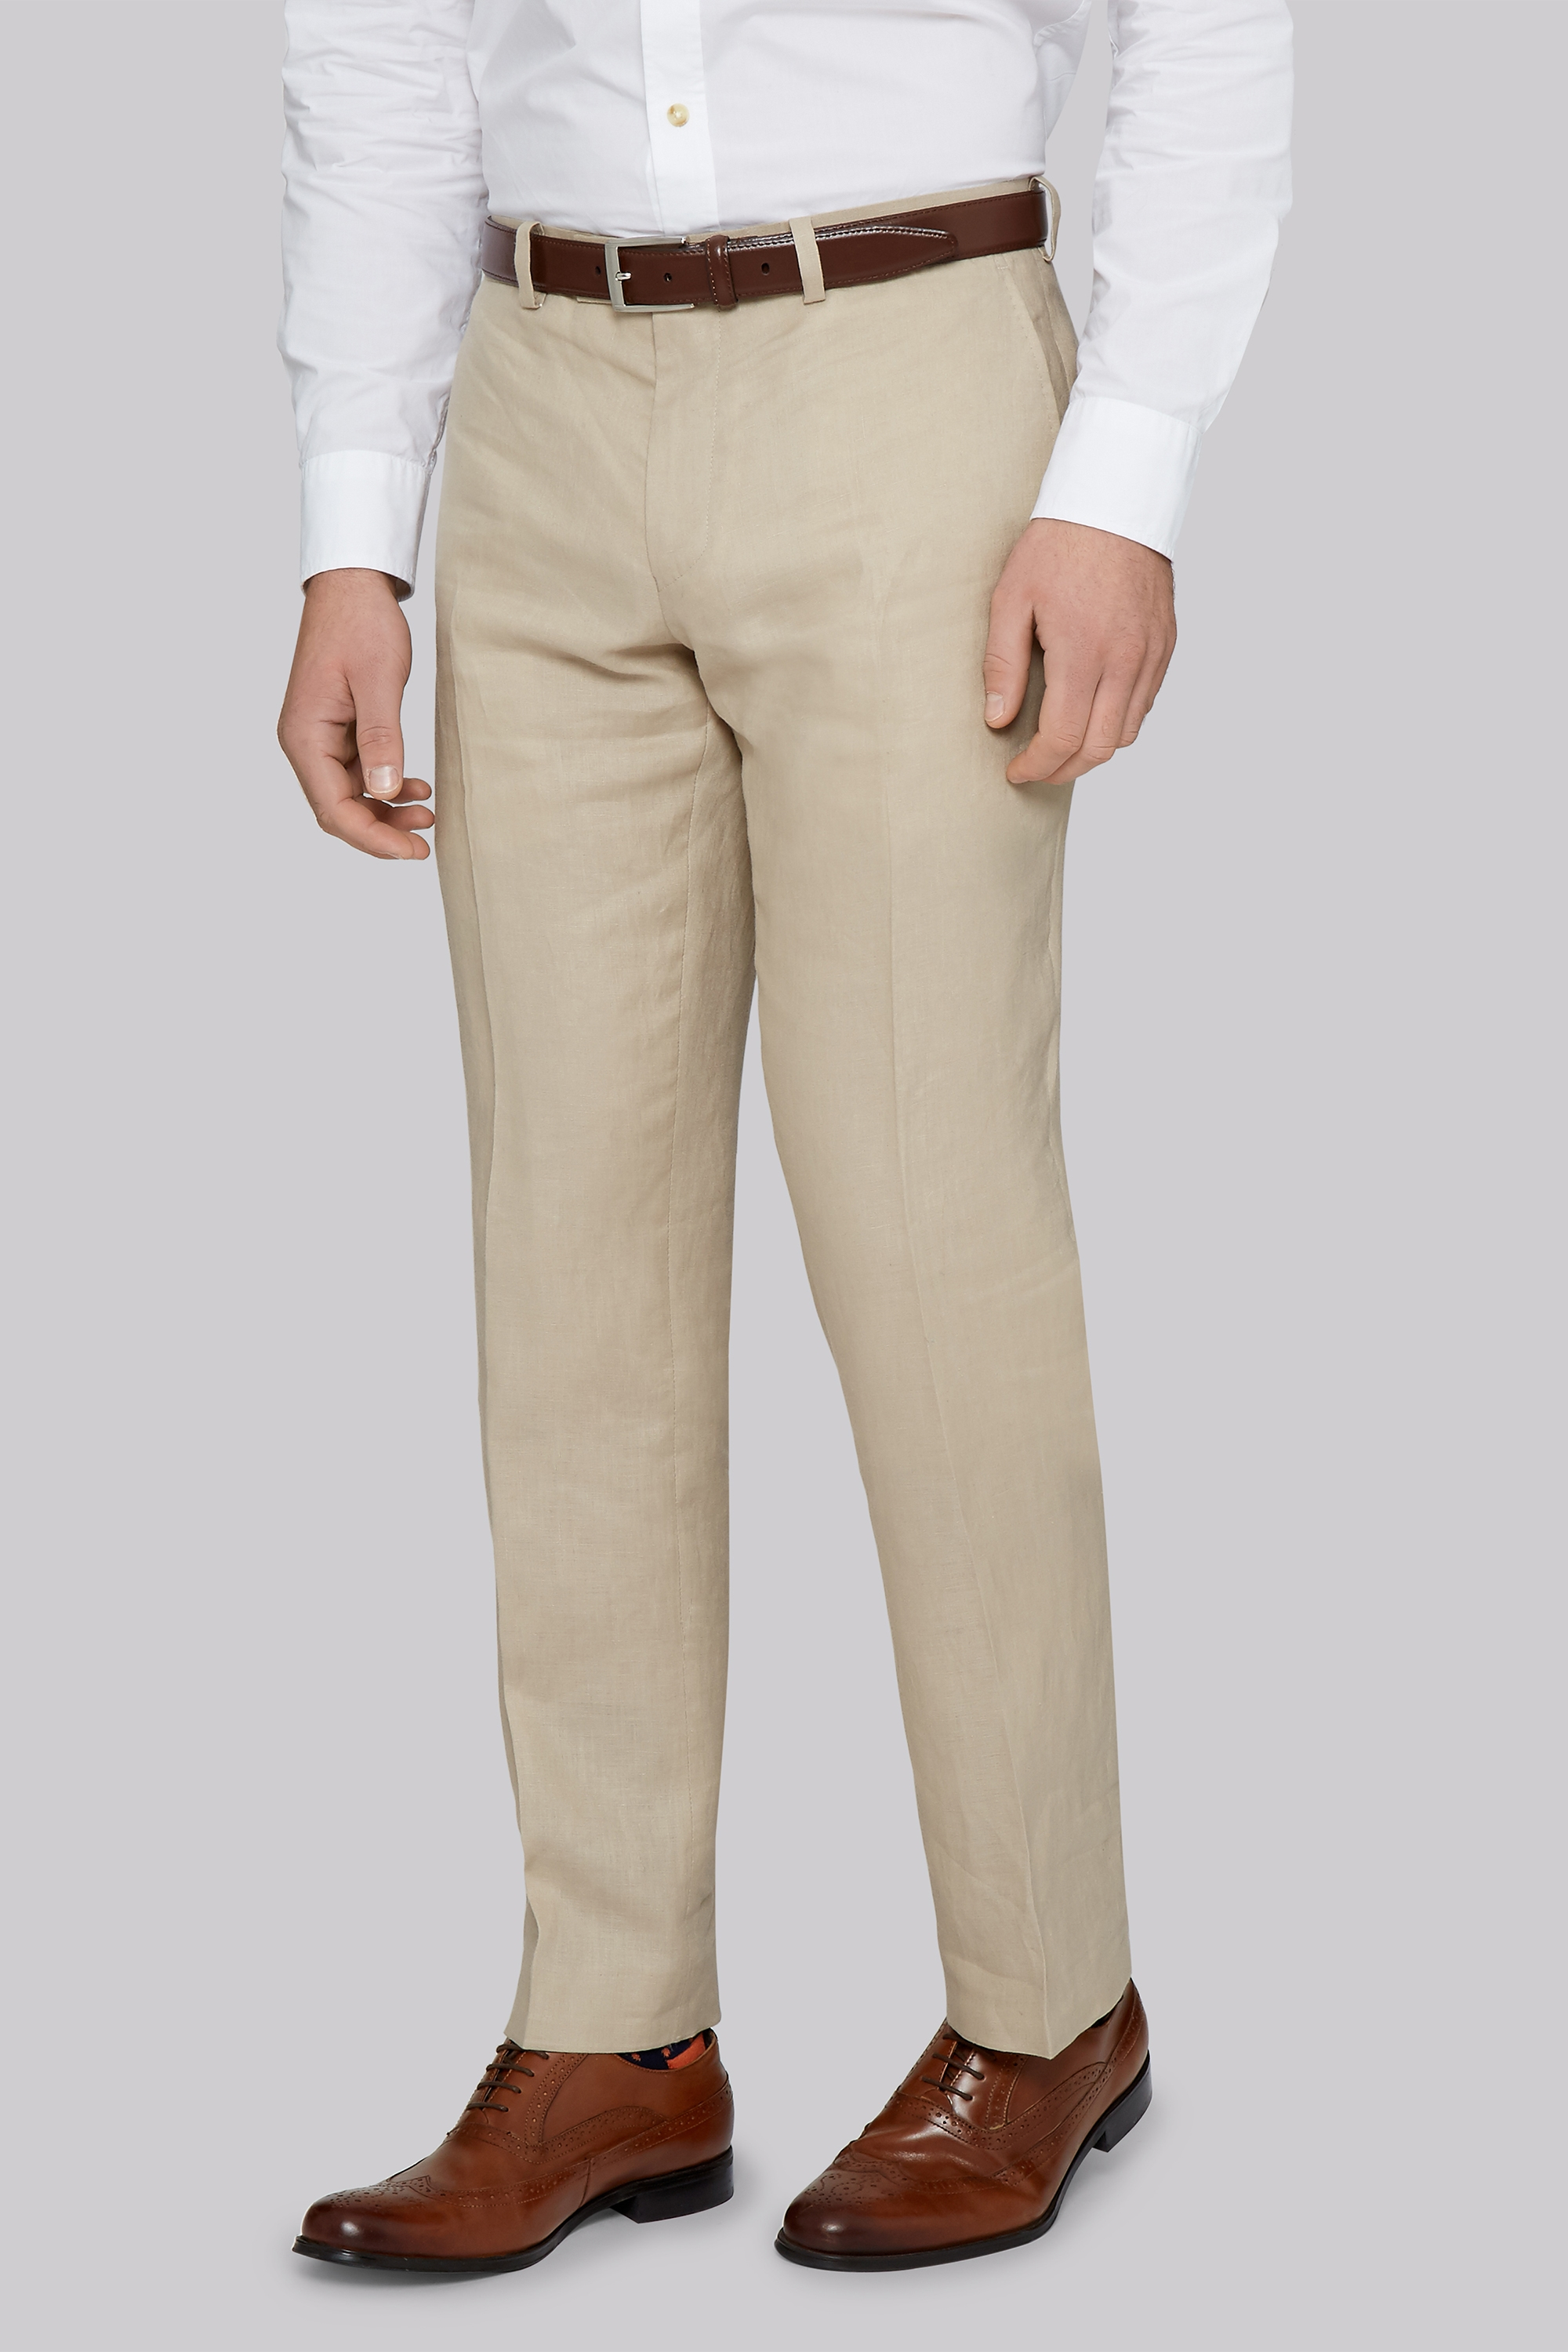 Free shipping and returns on Men's Linen Pants at makeshop-mdrcky9h.ga